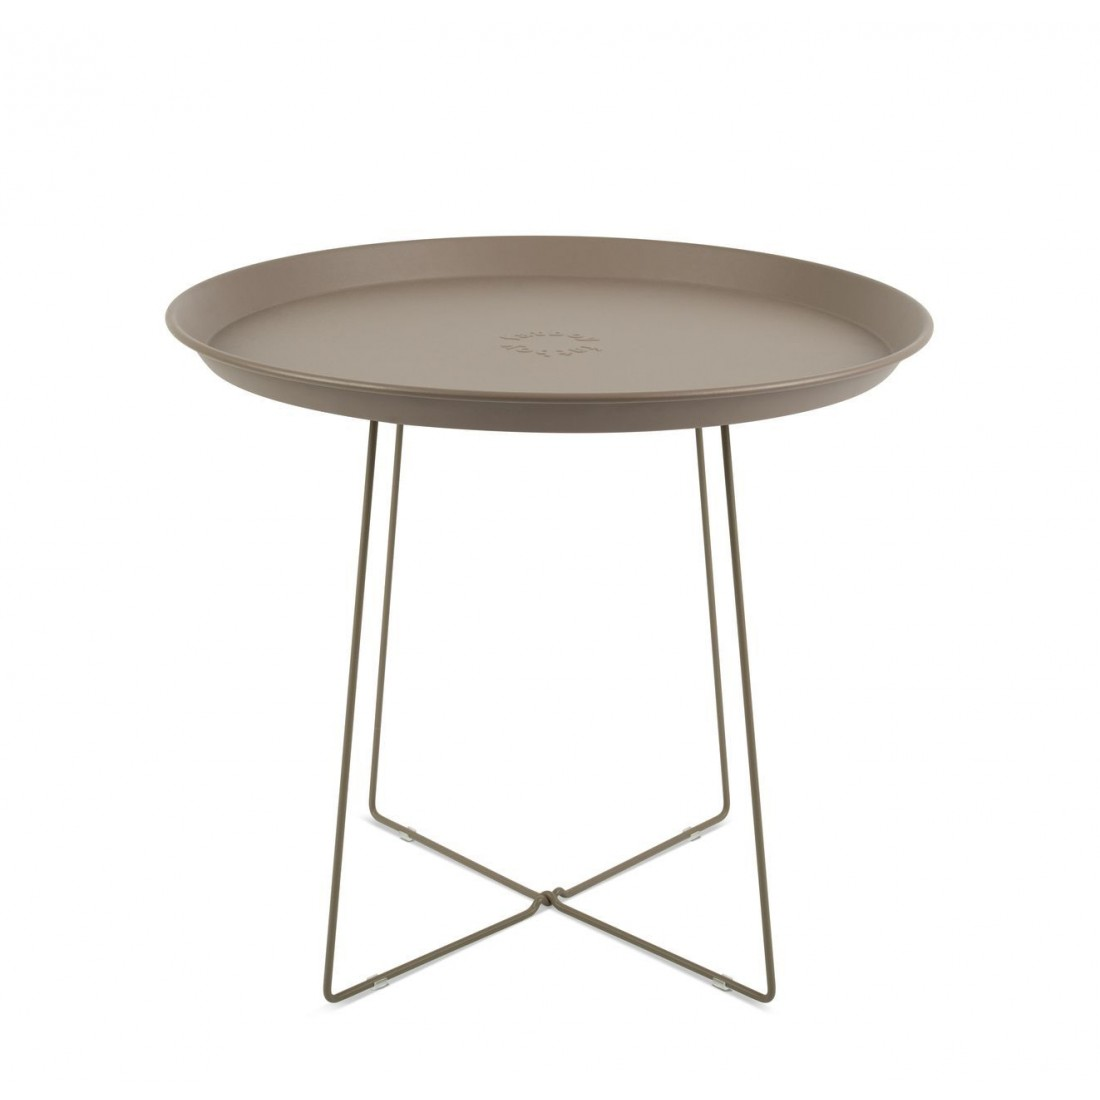 Table Basse Plat-O Taupe Outdoor Fatboy